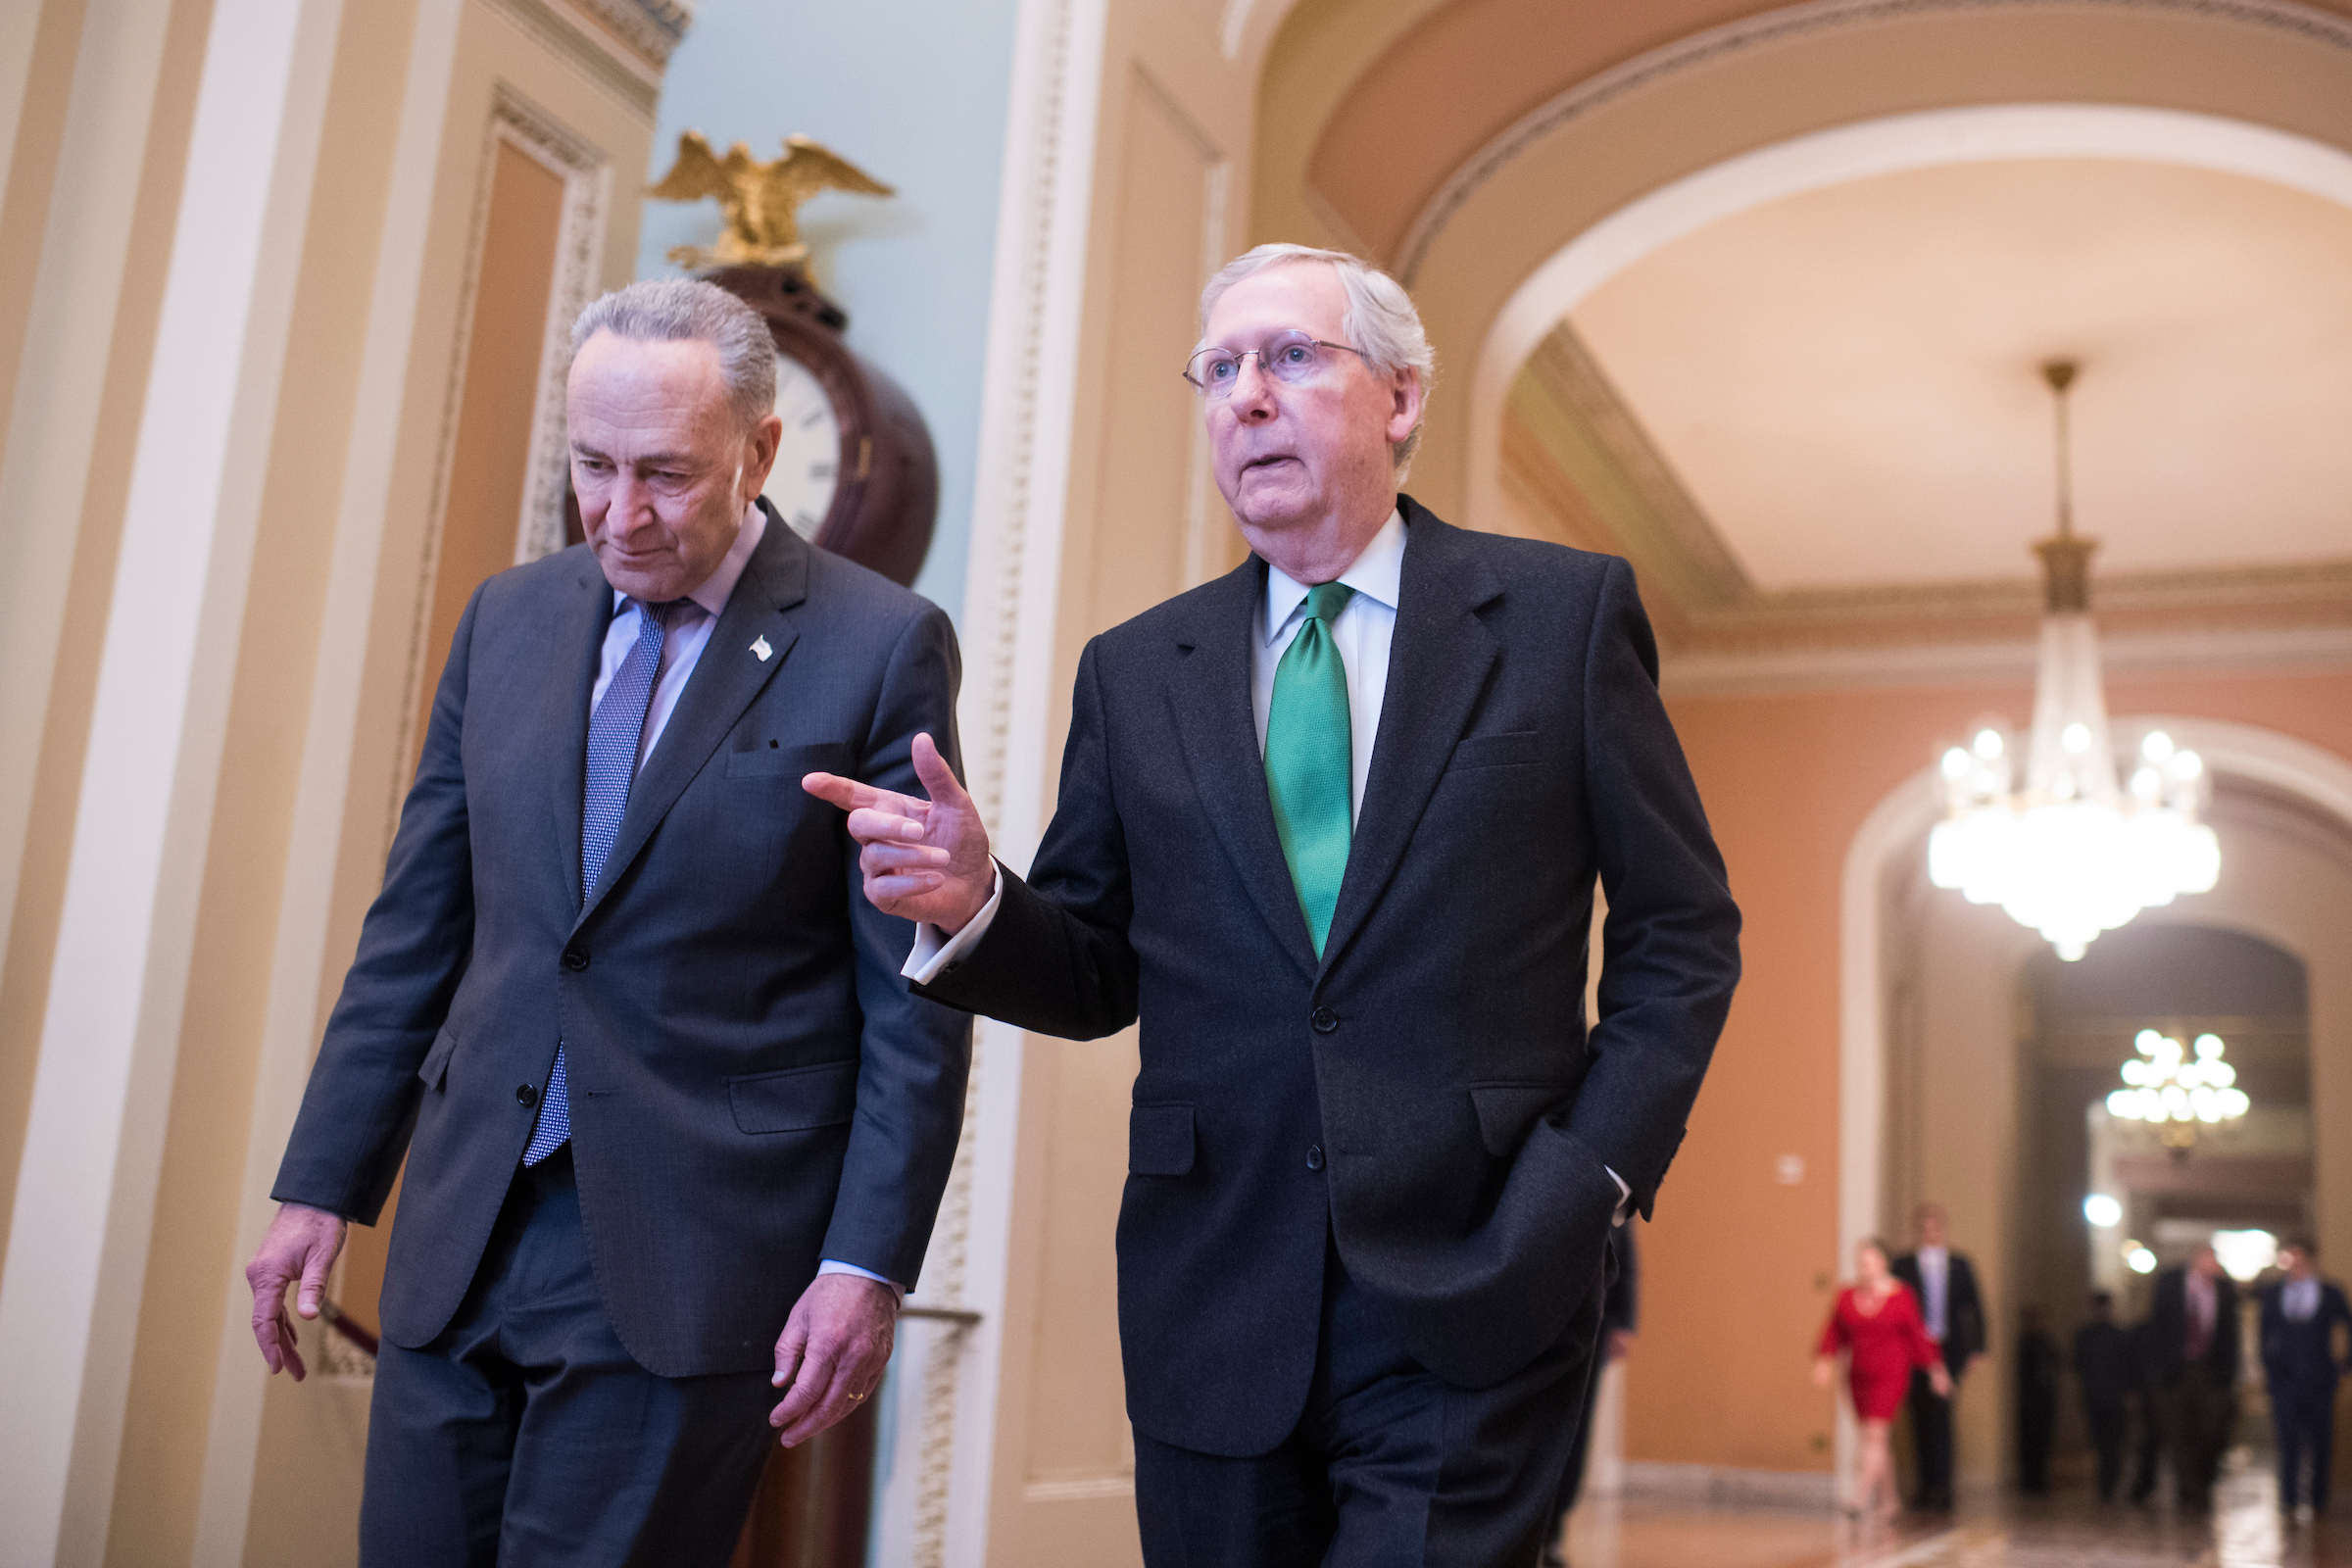 UNITED STATES - FEBRUARY 07: Senate Majority Leader Mitch McConnell, R-Ky., right, and Senate Minority Leader Charles Schumer, D-N.Y., make their way to the Senate floor after announcing a two-year deal on the budget earlier in the day on February 7, 2018. (Photo By Tom Williams/CQ Roll Call)